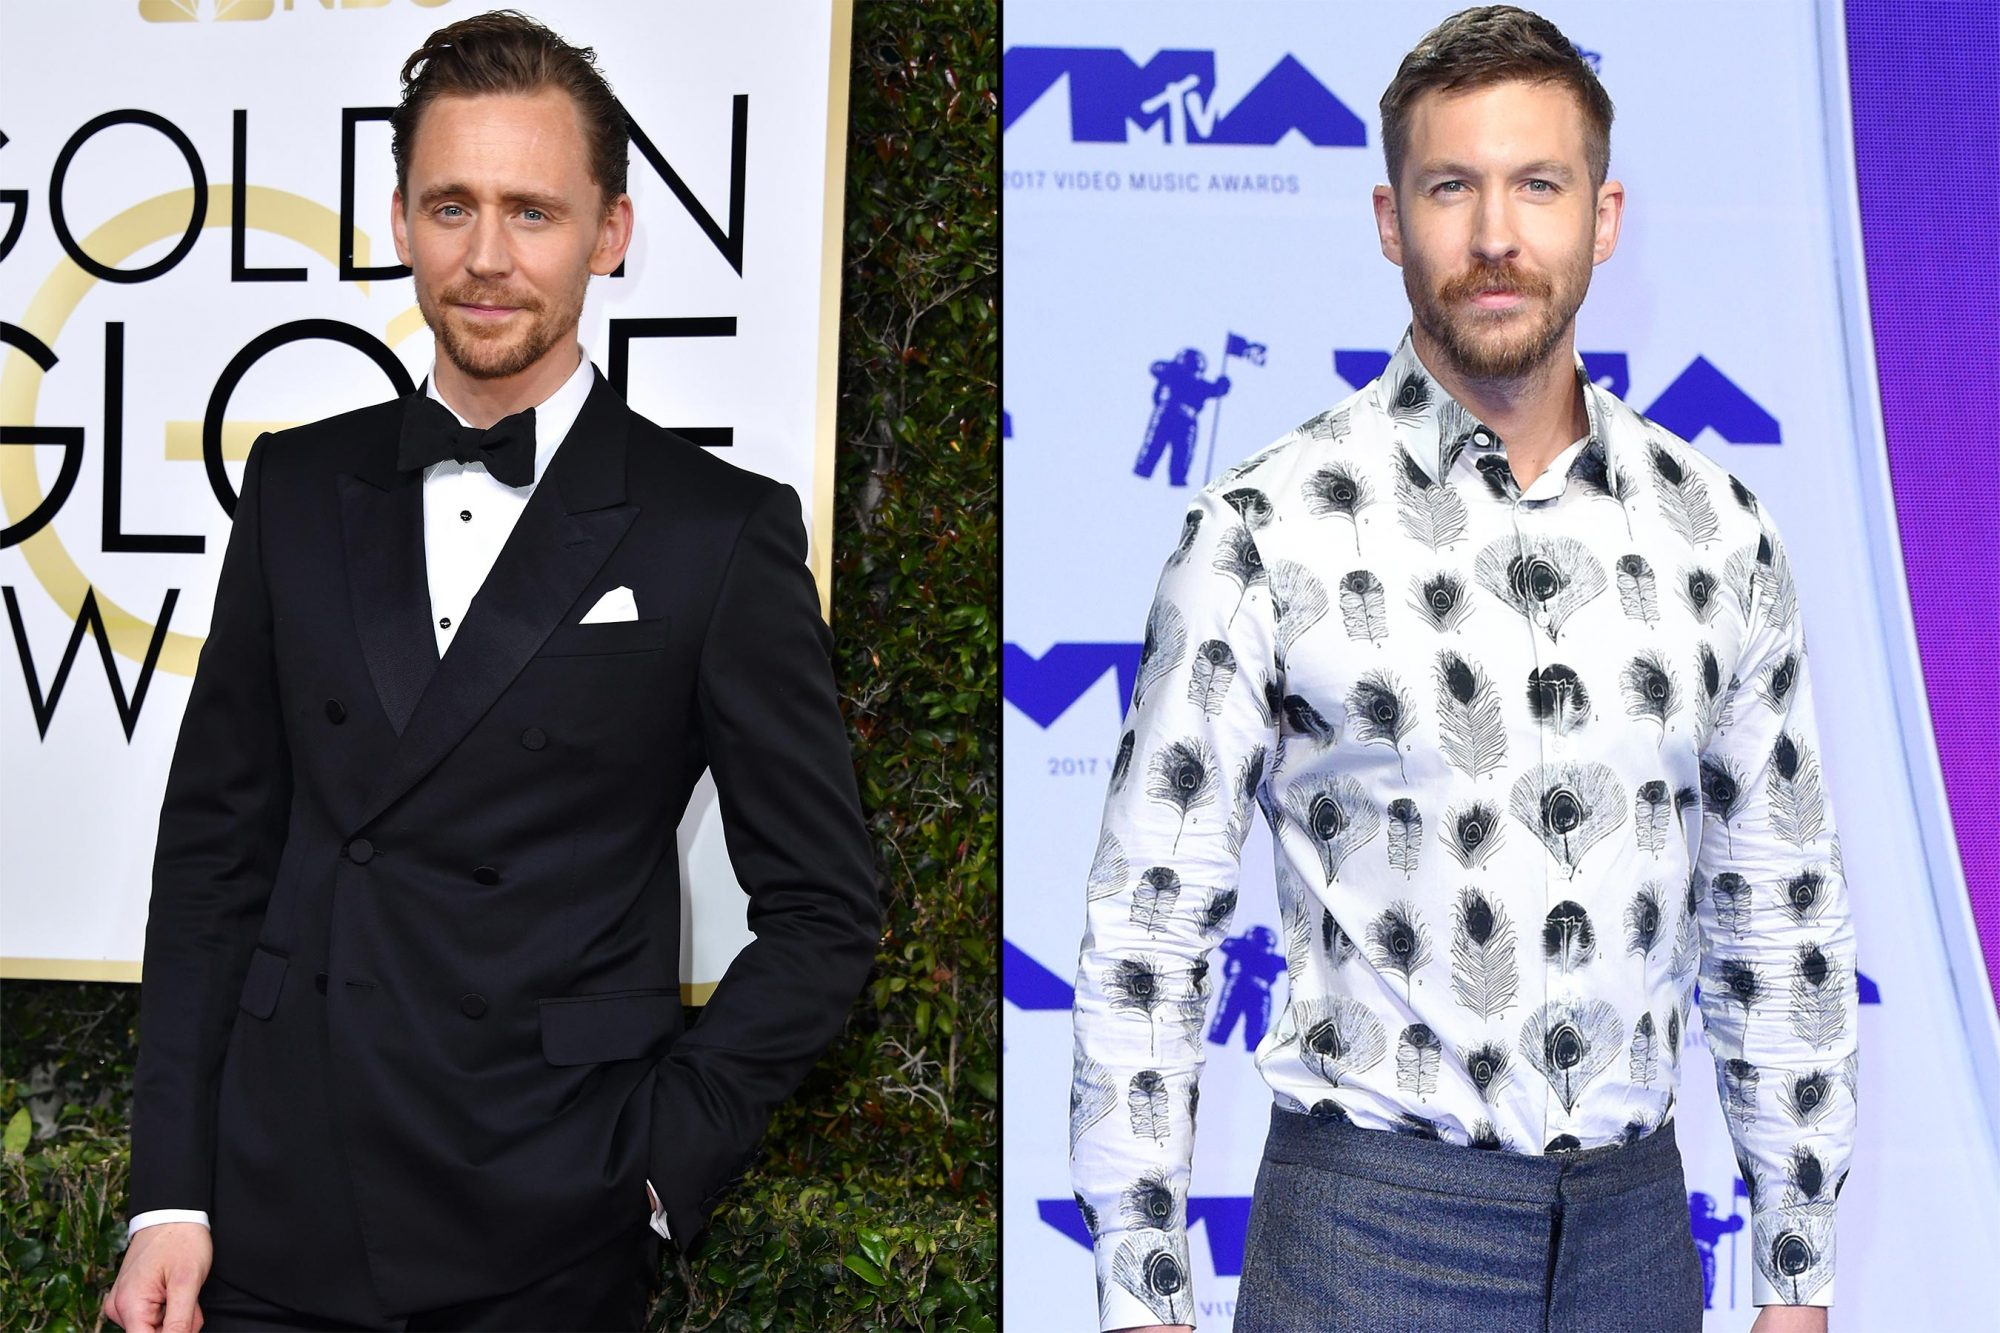 Tom-Hiddleston-Calvin-Harris